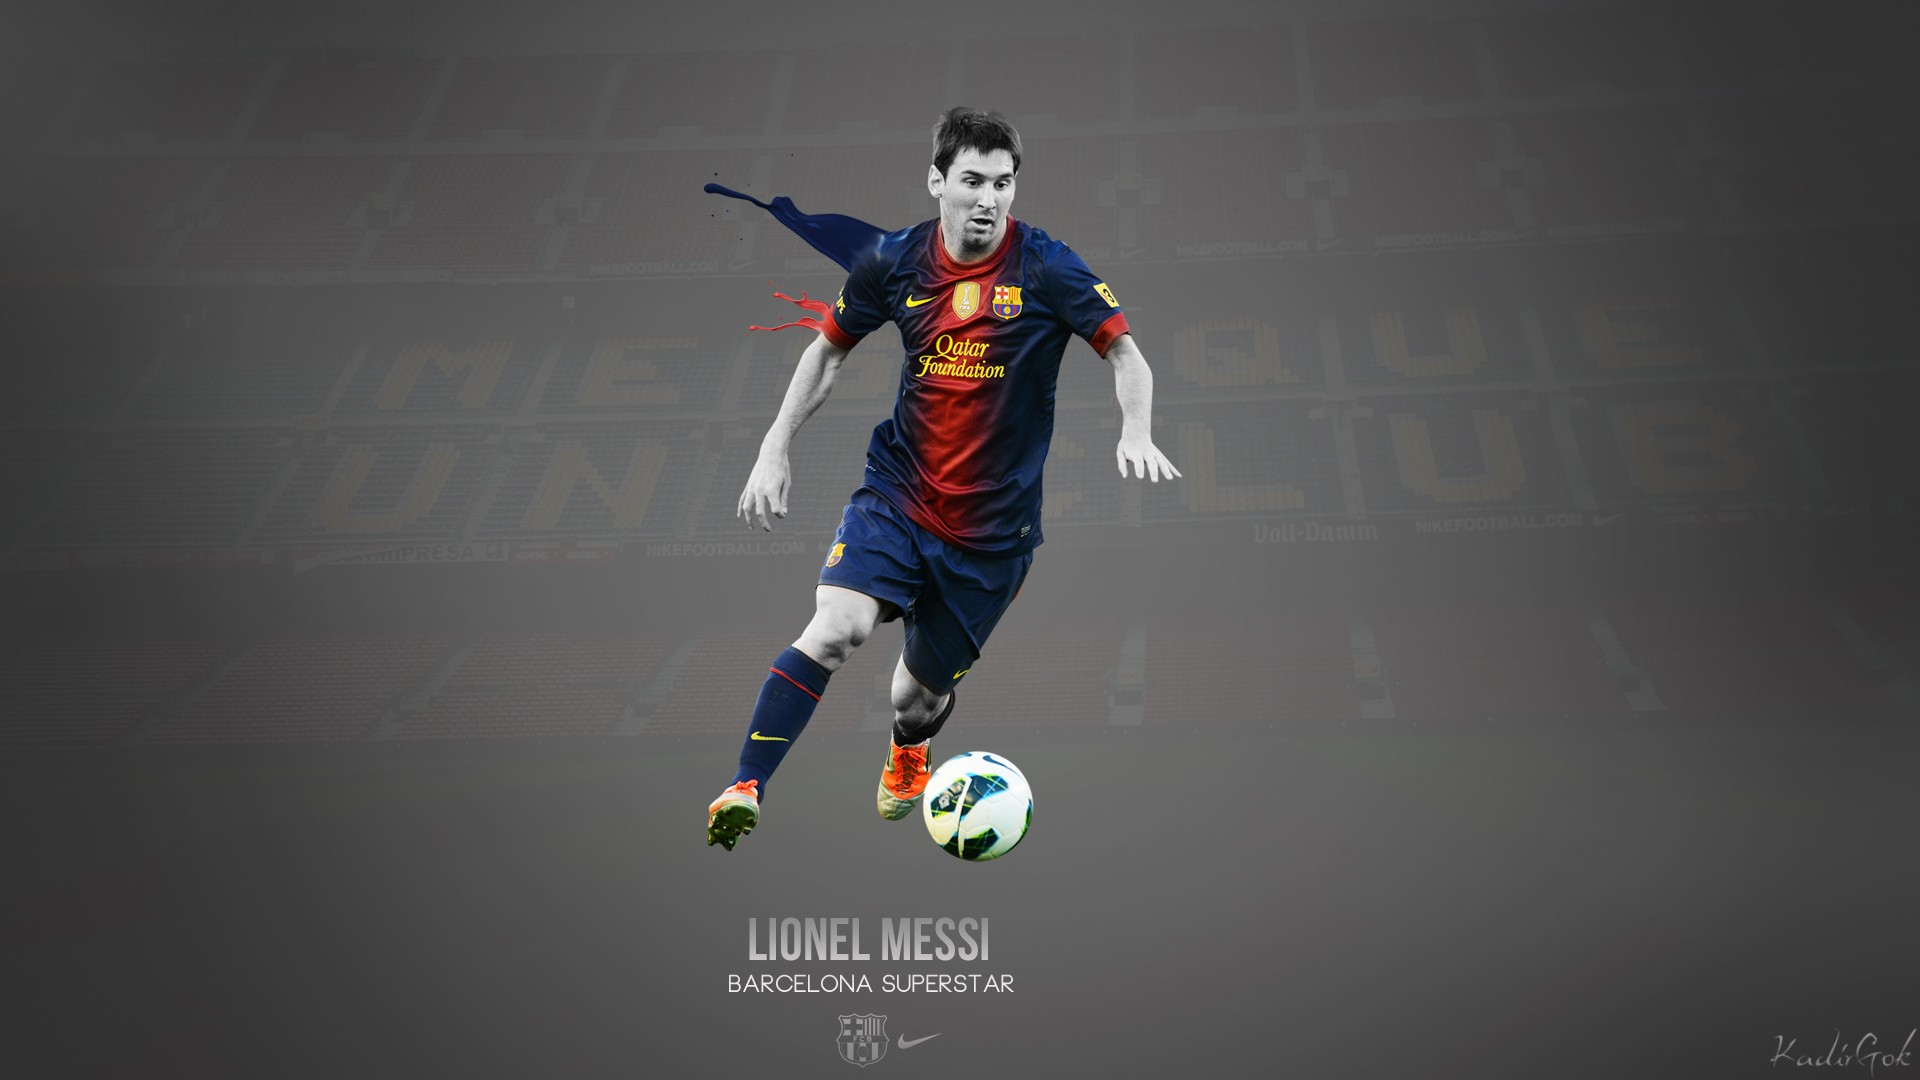 Lionel Messi  Wallpaper HD  HD Wallpapers Backgrounds of Your 1920x1080